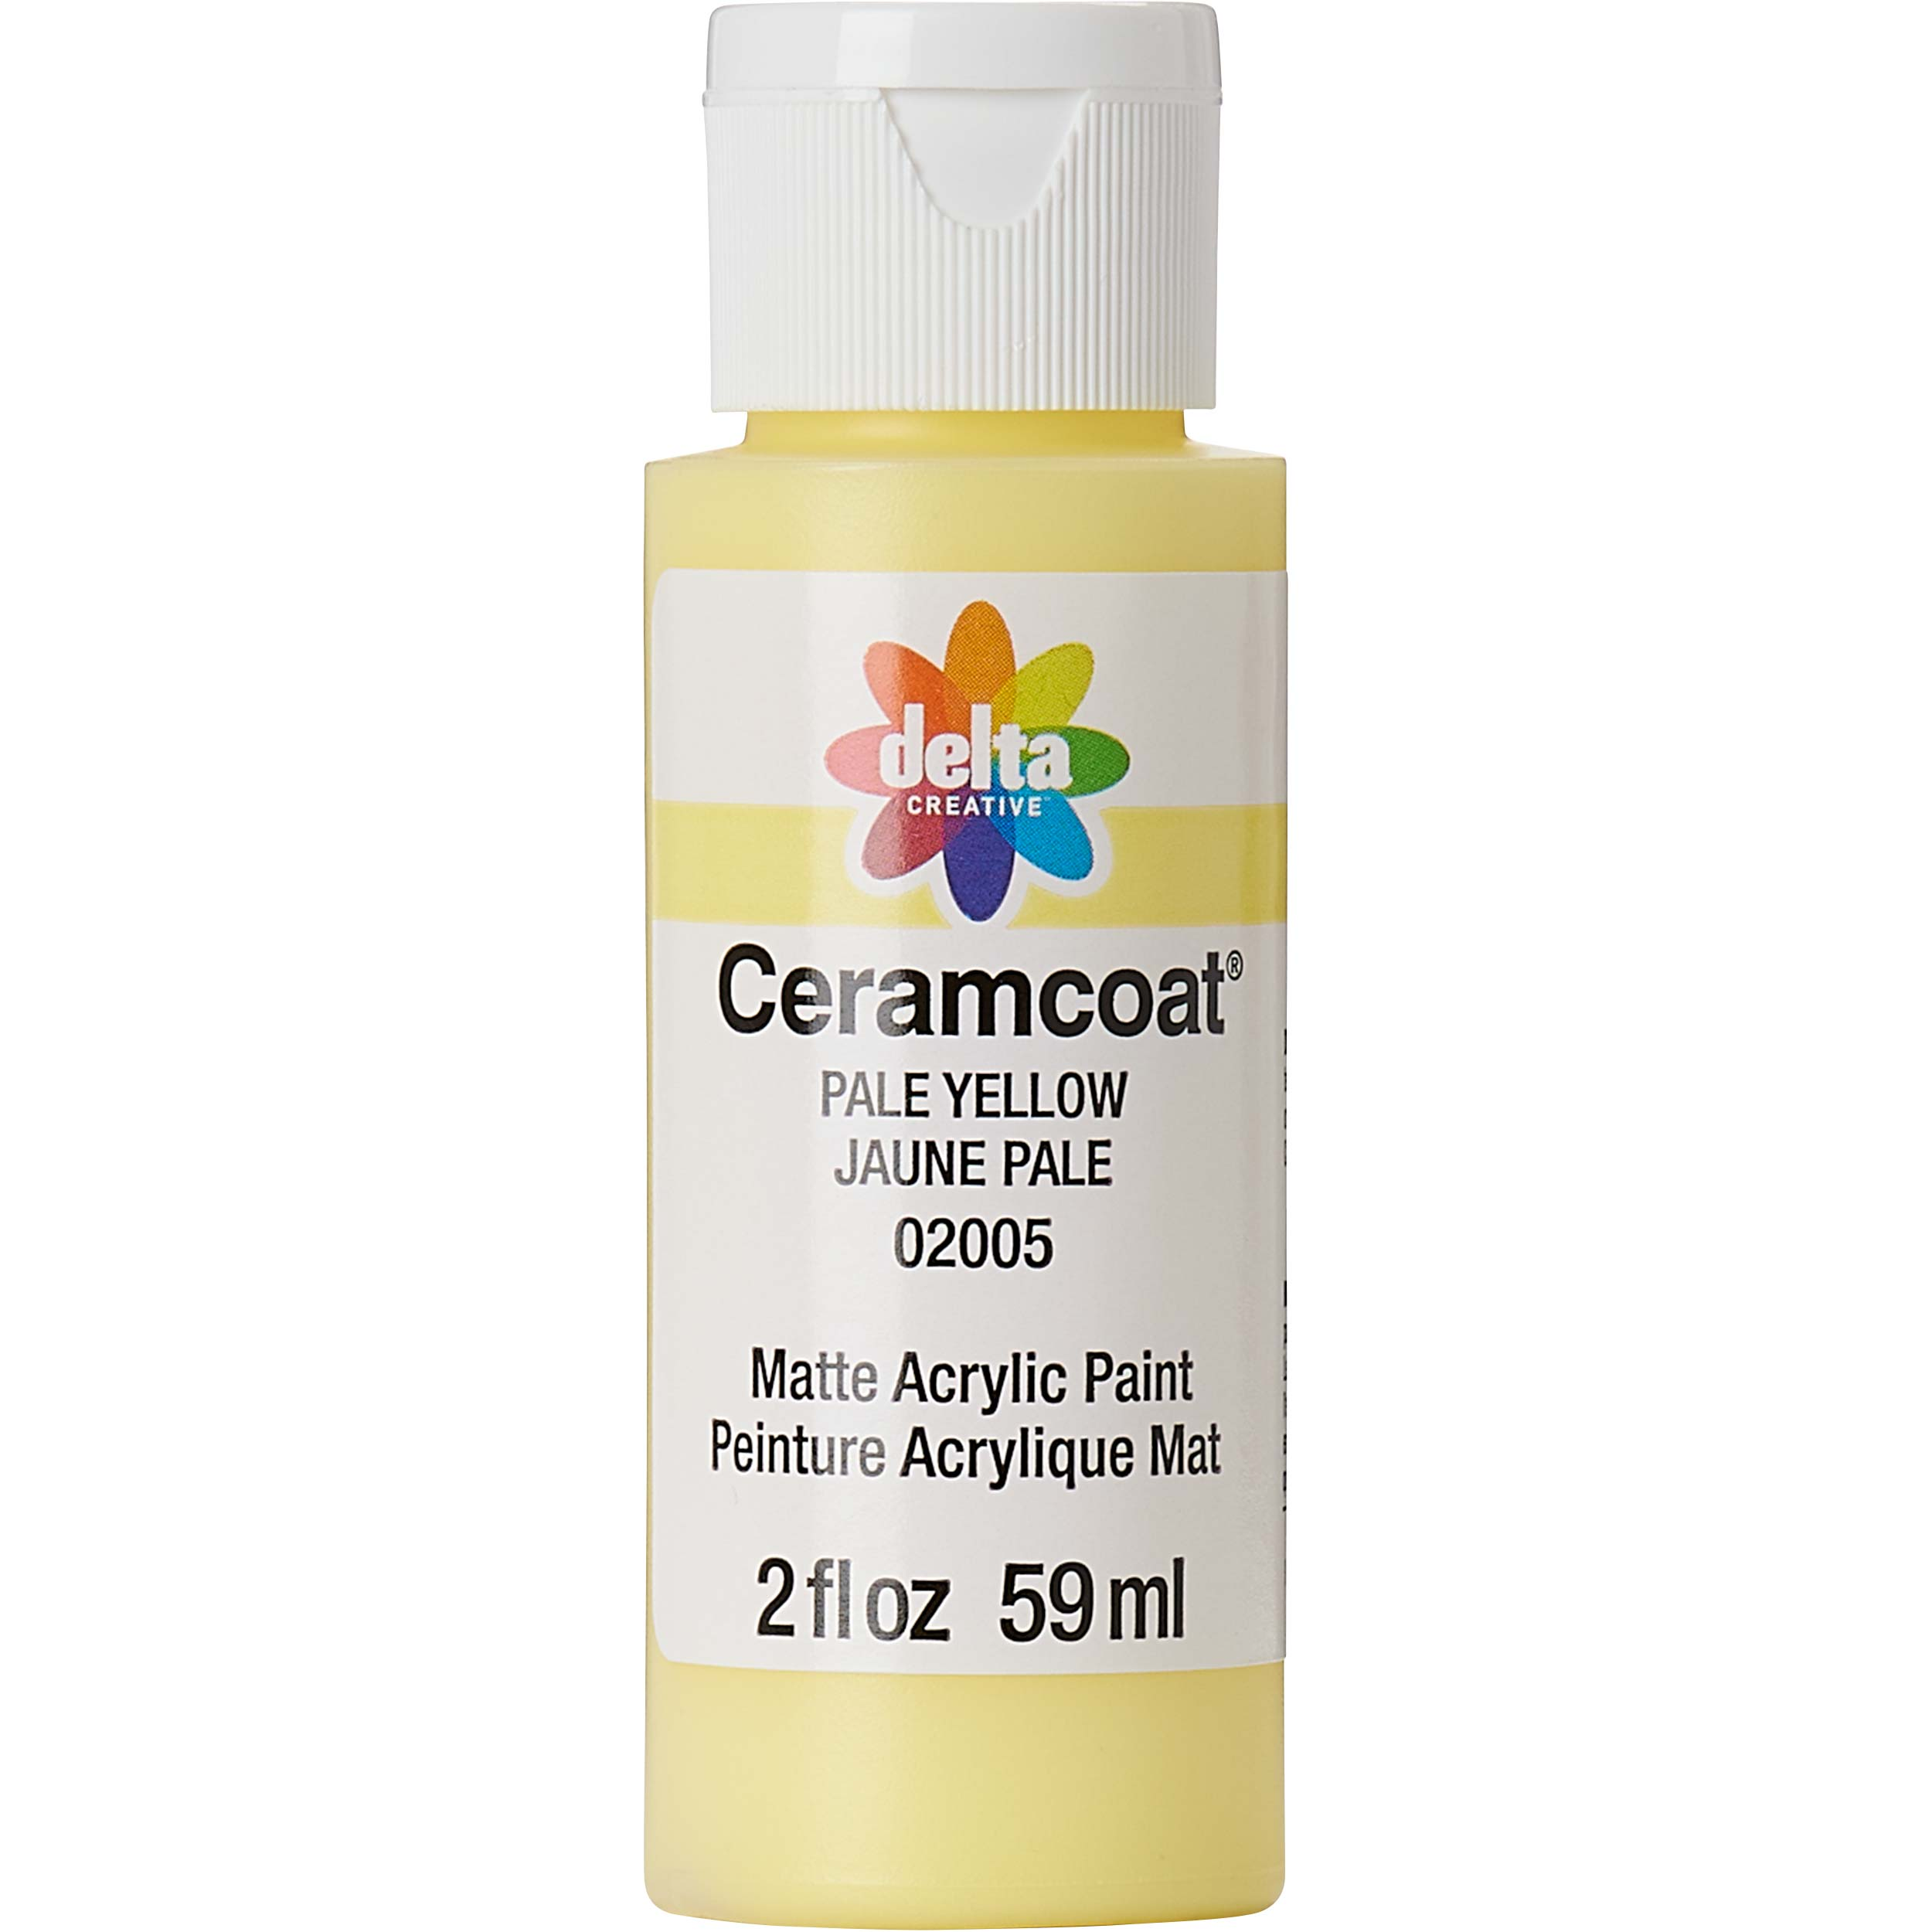 Delta Ceramcoat ® Acrylic Paint - Pale Yellow, 2 oz.